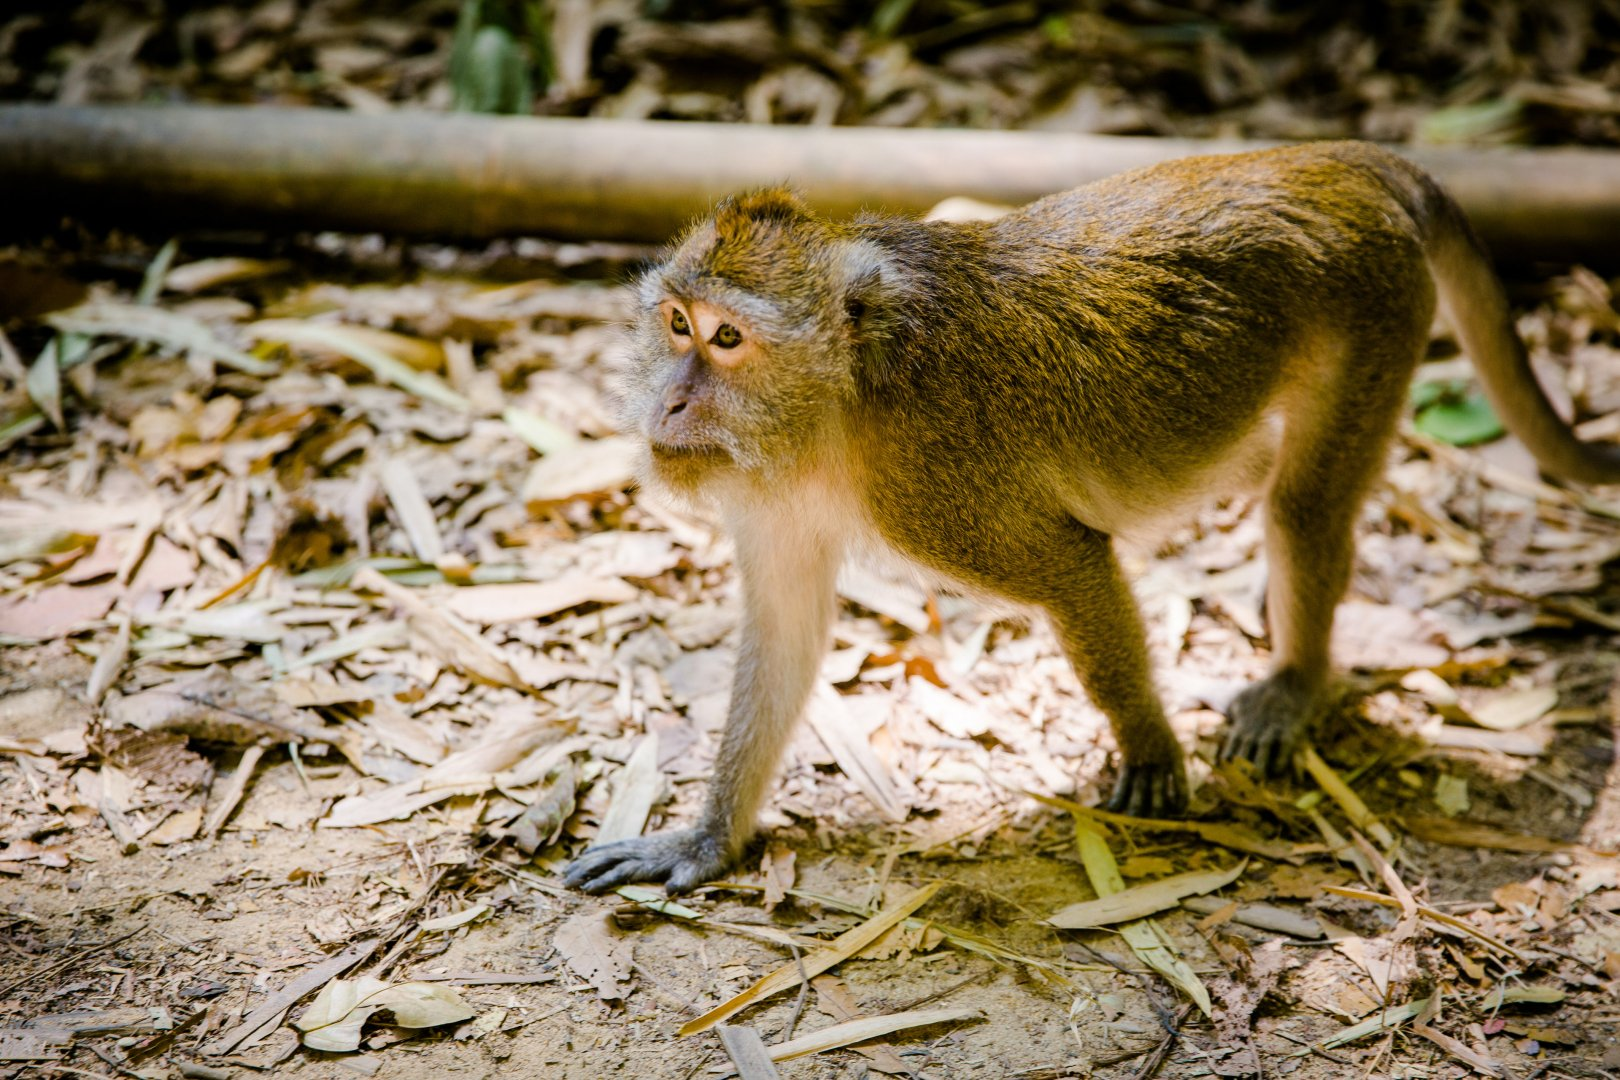 Vertebrate Mammal Wildlife Macaque Old world monkey Terrestrial animal New World monkey Primate Adaptation Snout Organism Fawn Tail Zoo Plant patas National park Fur Forest